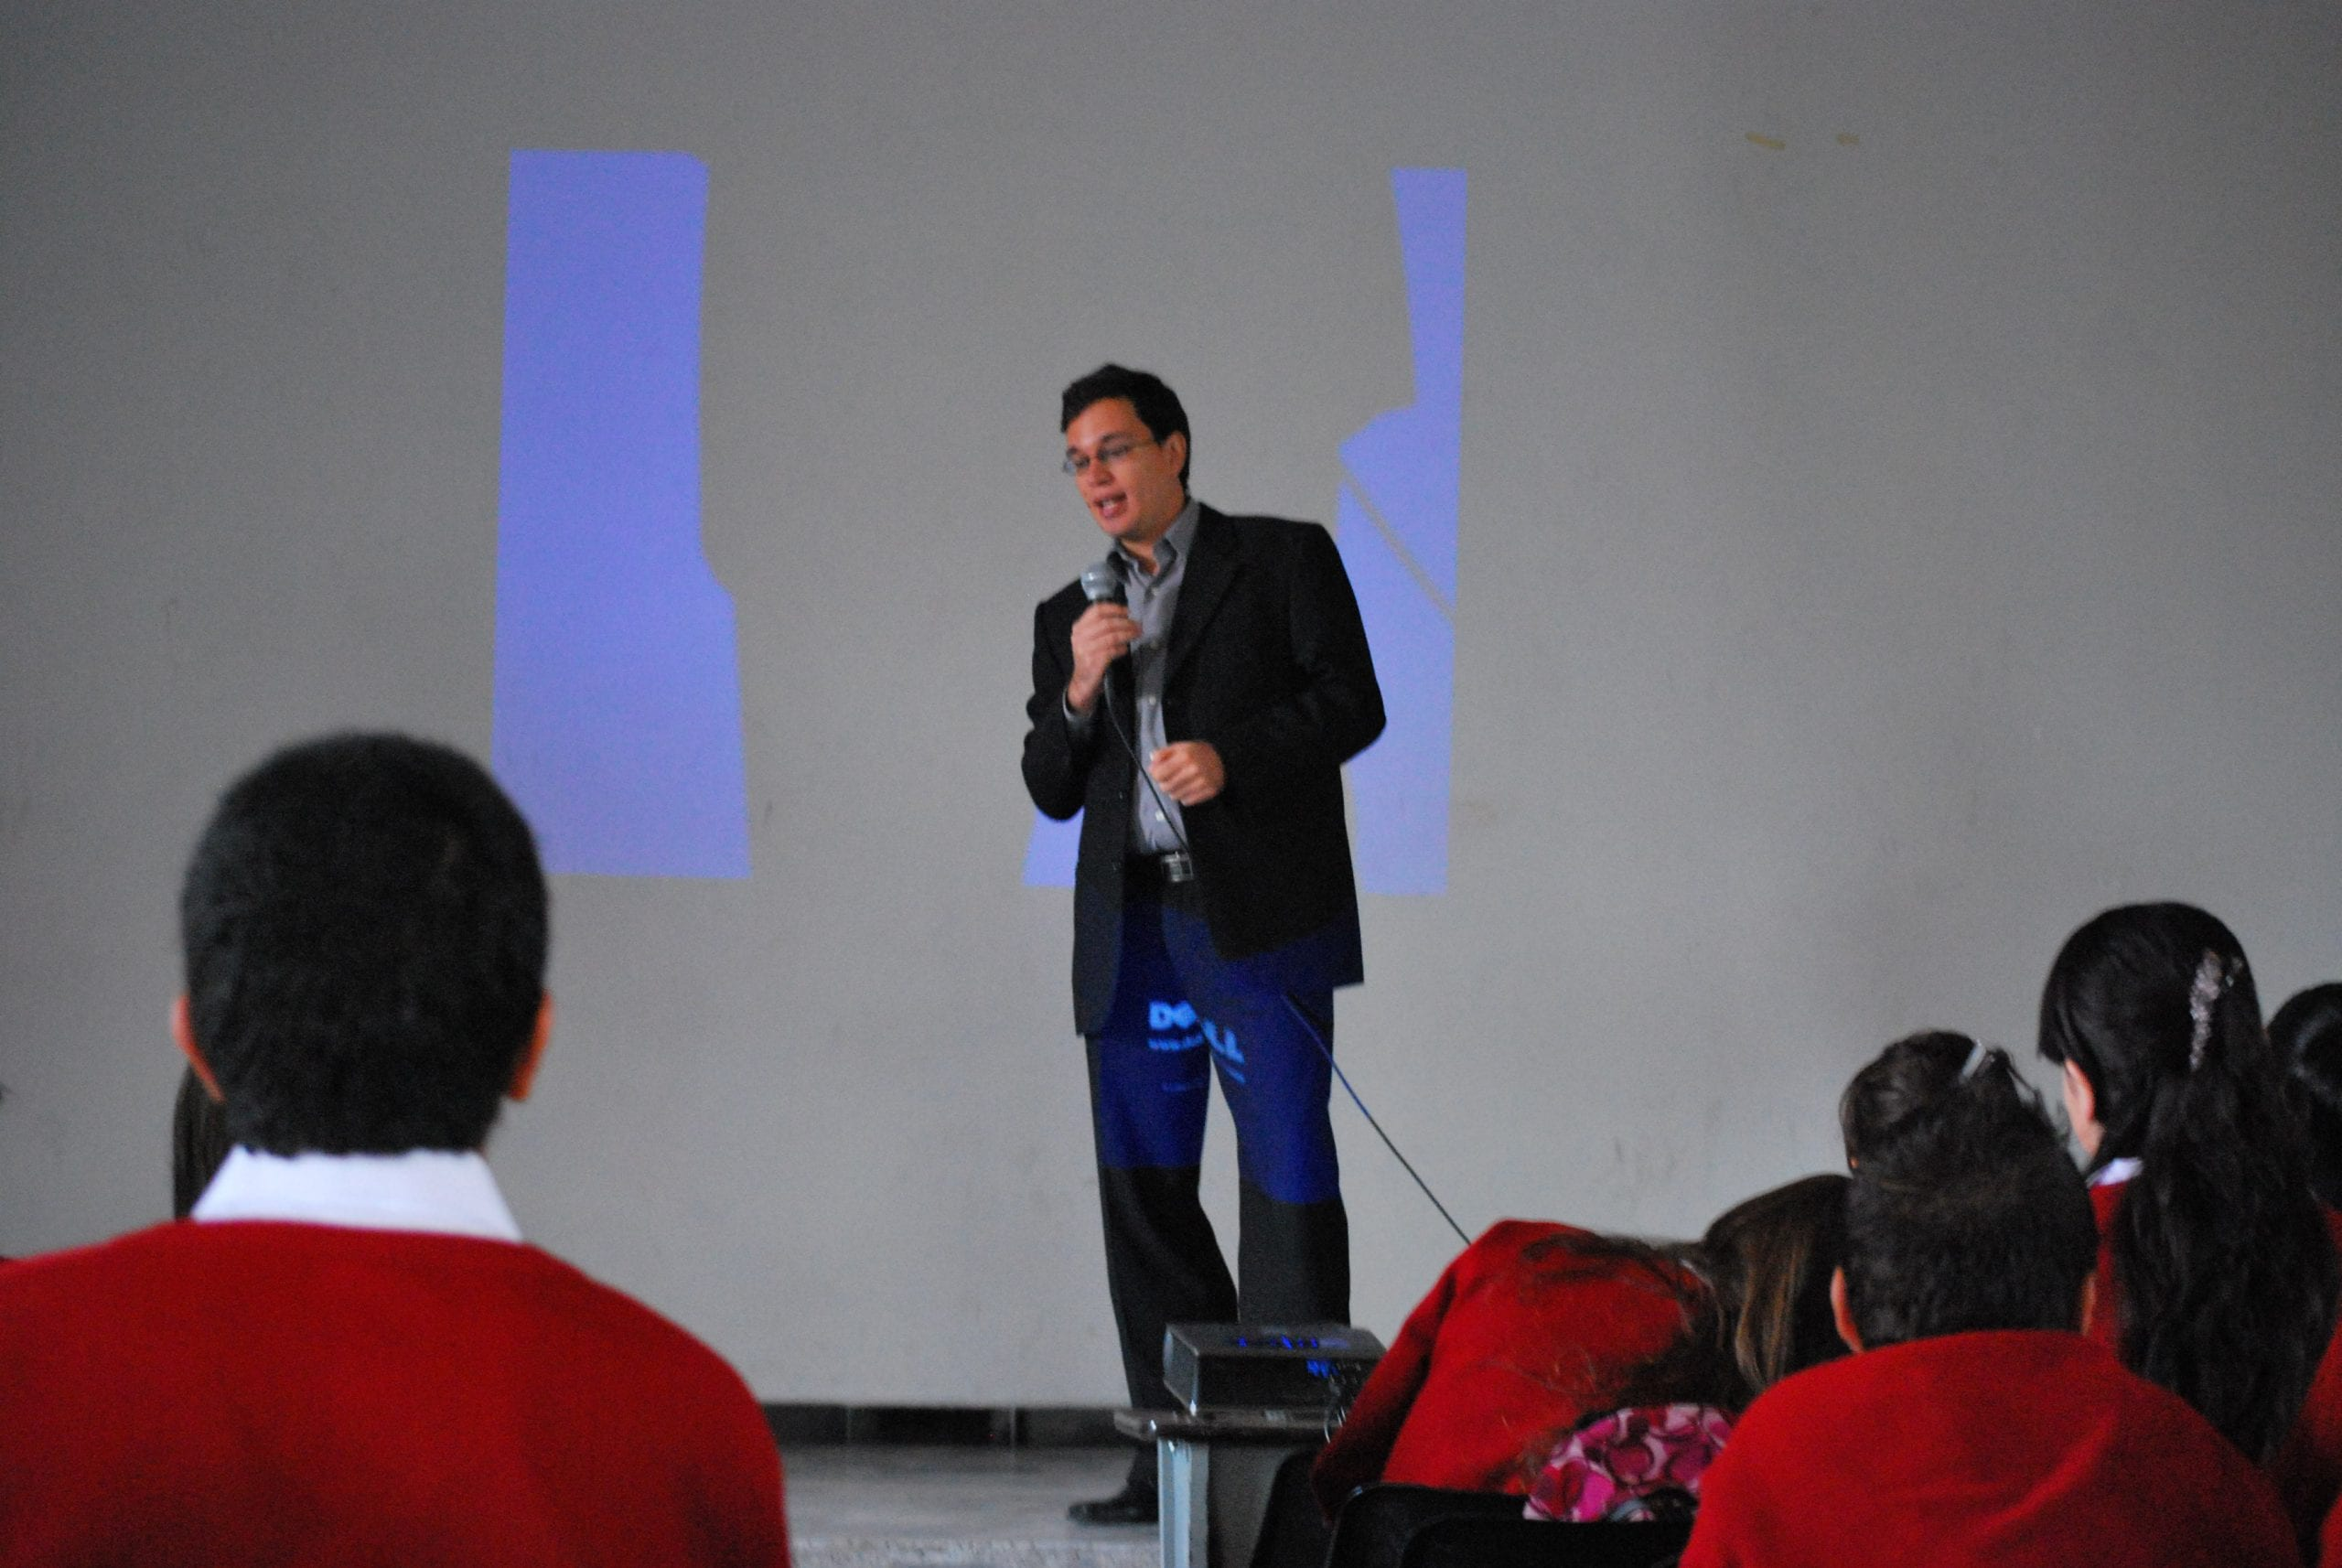 Pablo Rios education motivation and business planning